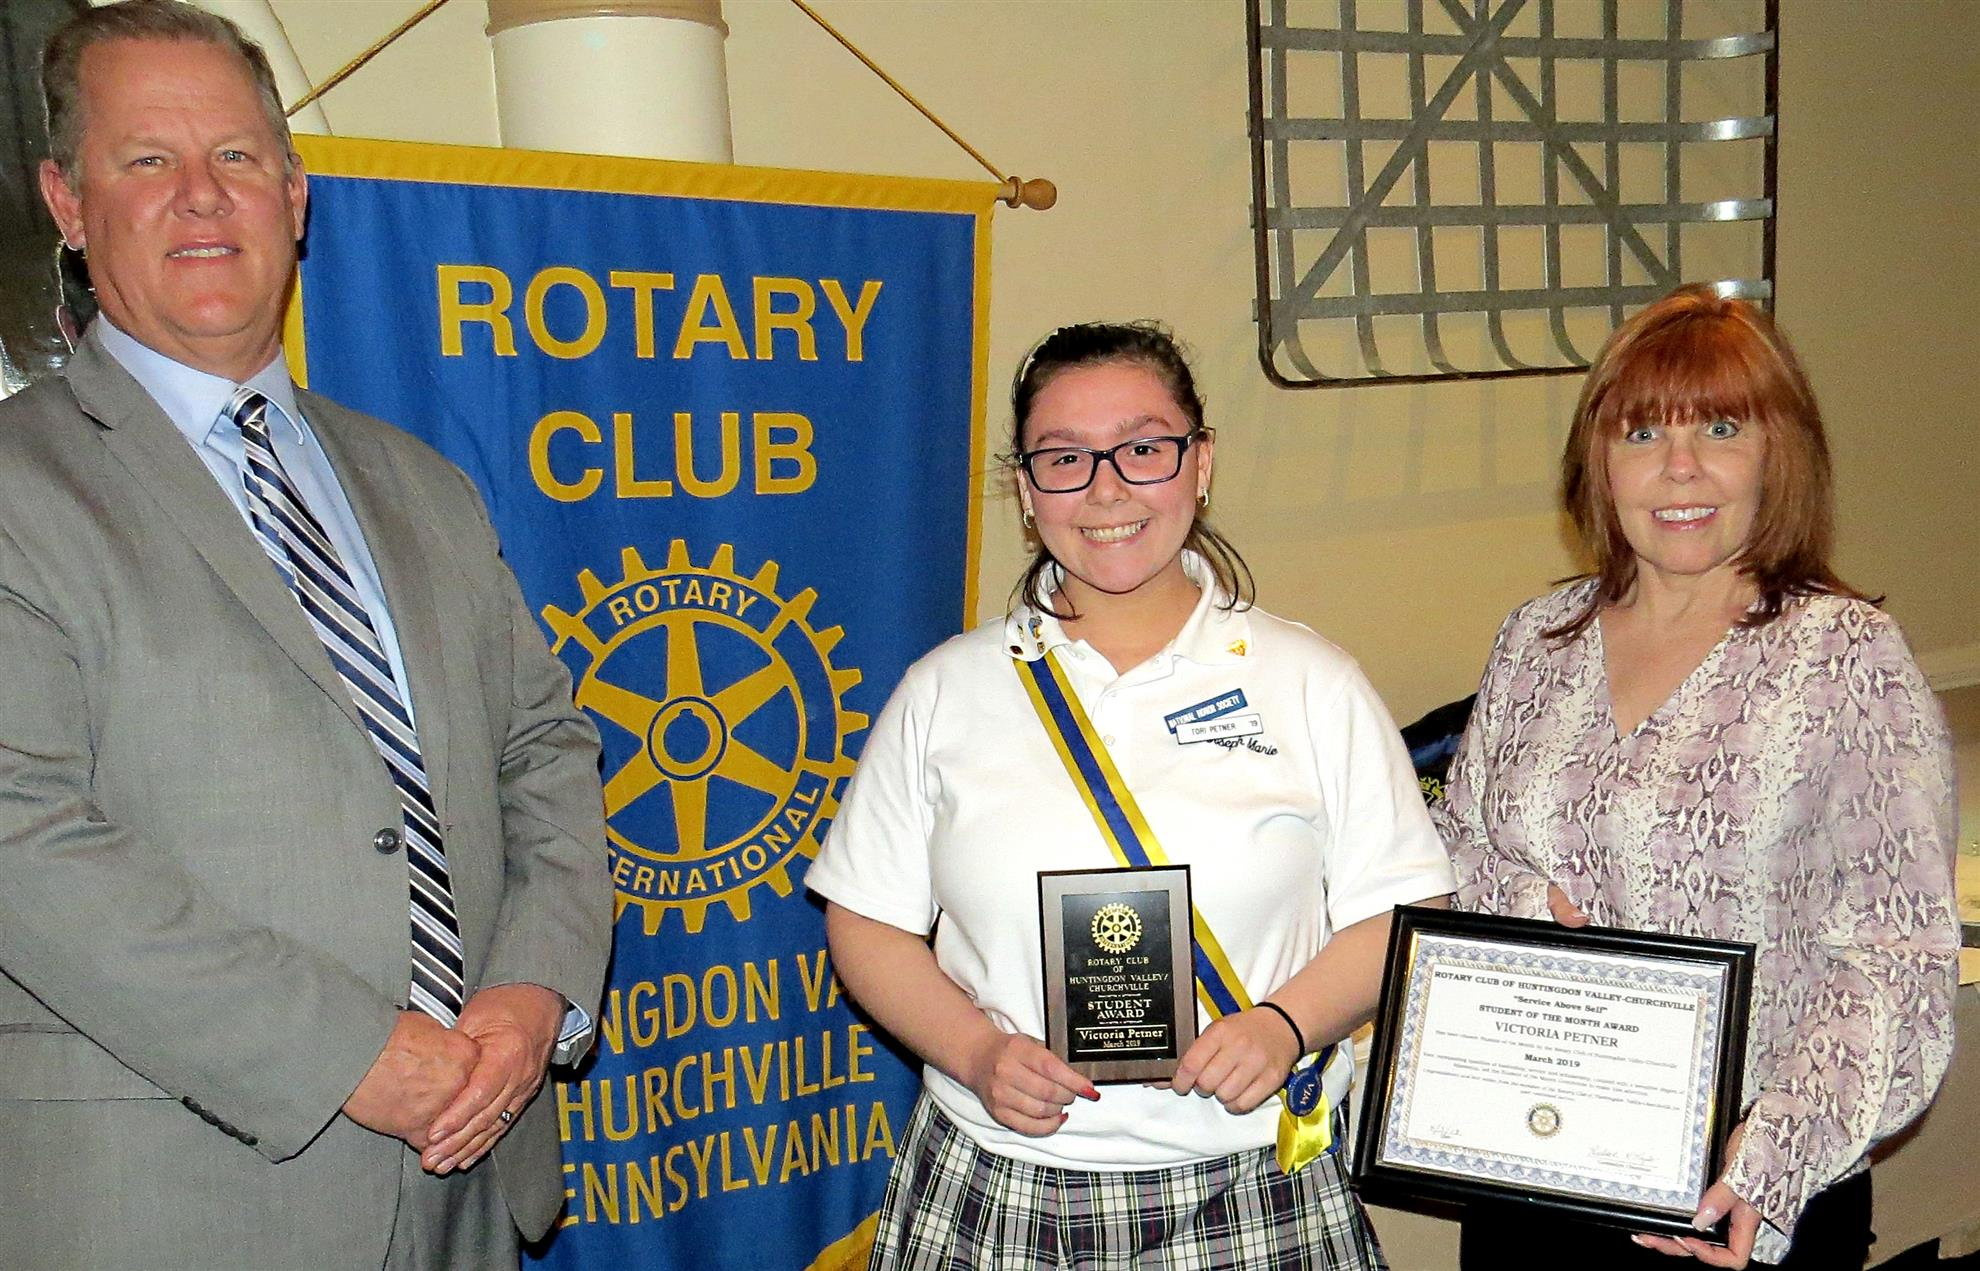 Stories | Rotary Club of Huntingdon Valley-Churchville